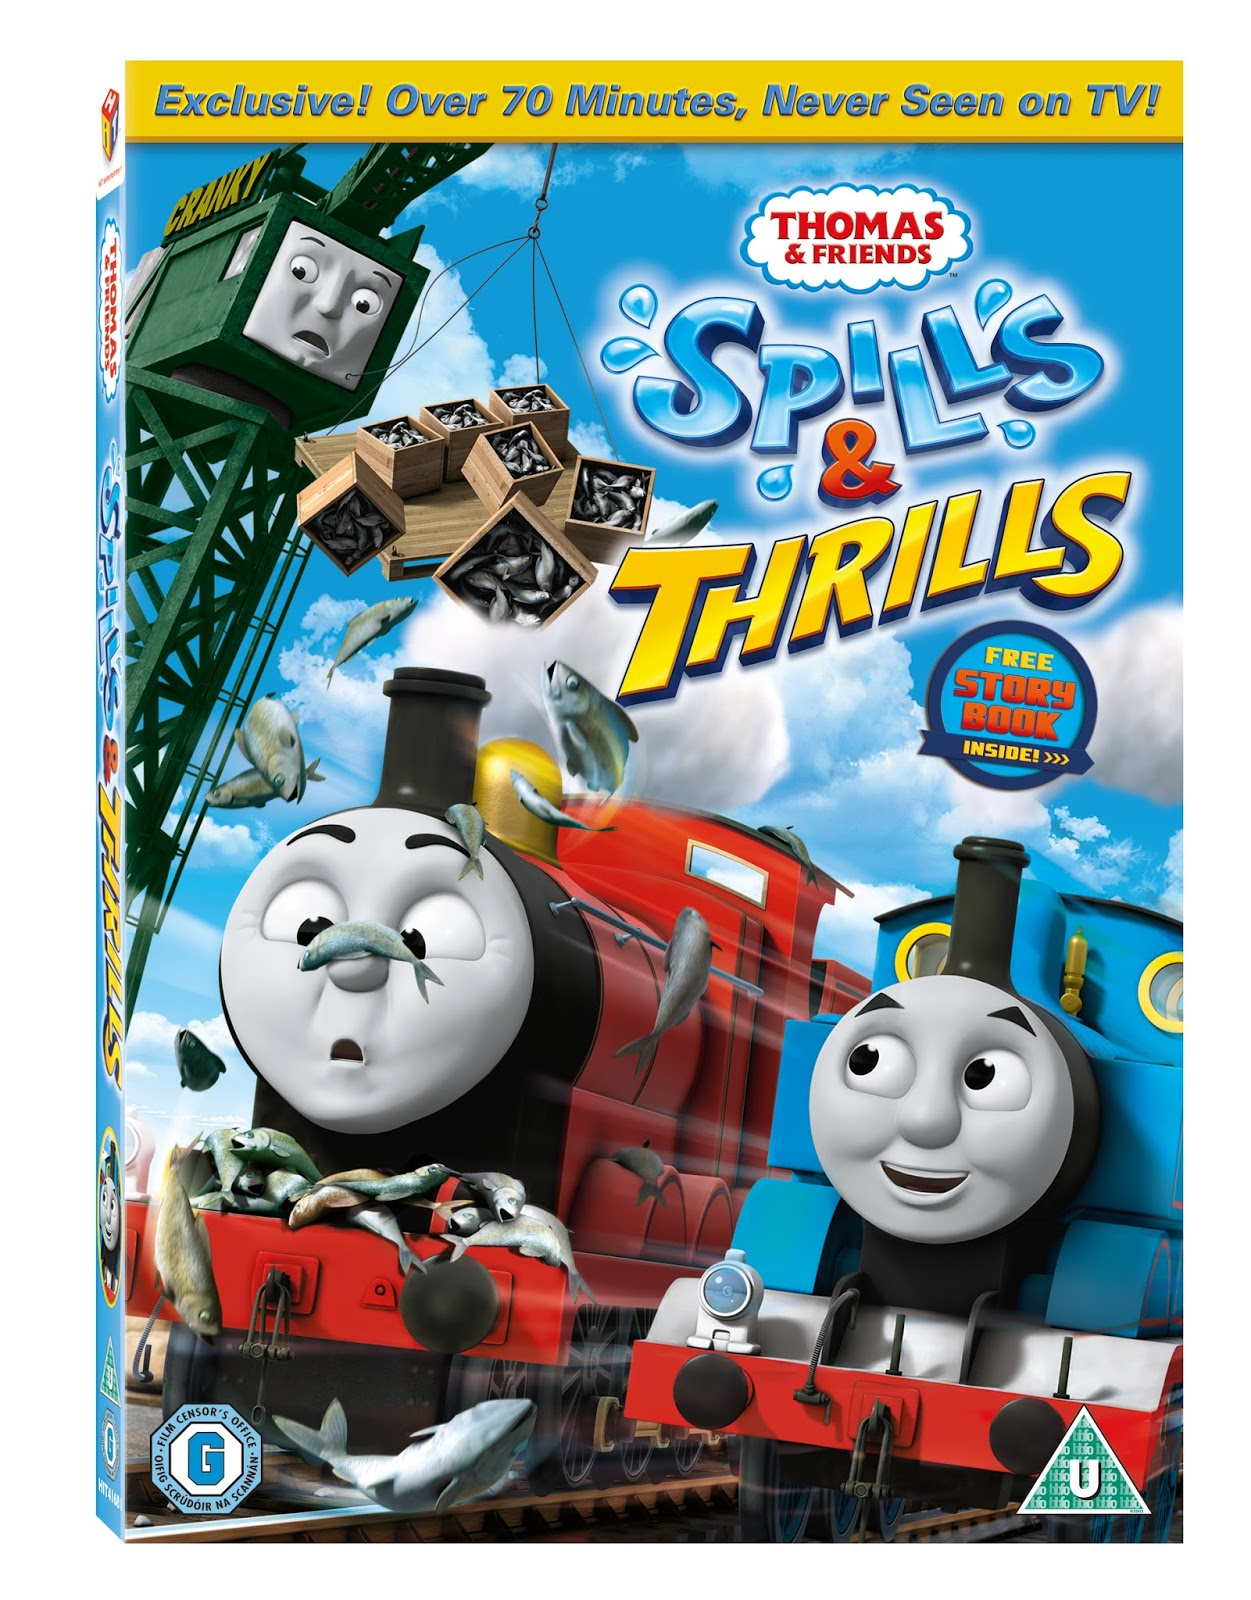 Thomas & Friends: Spills & Thrills DVD